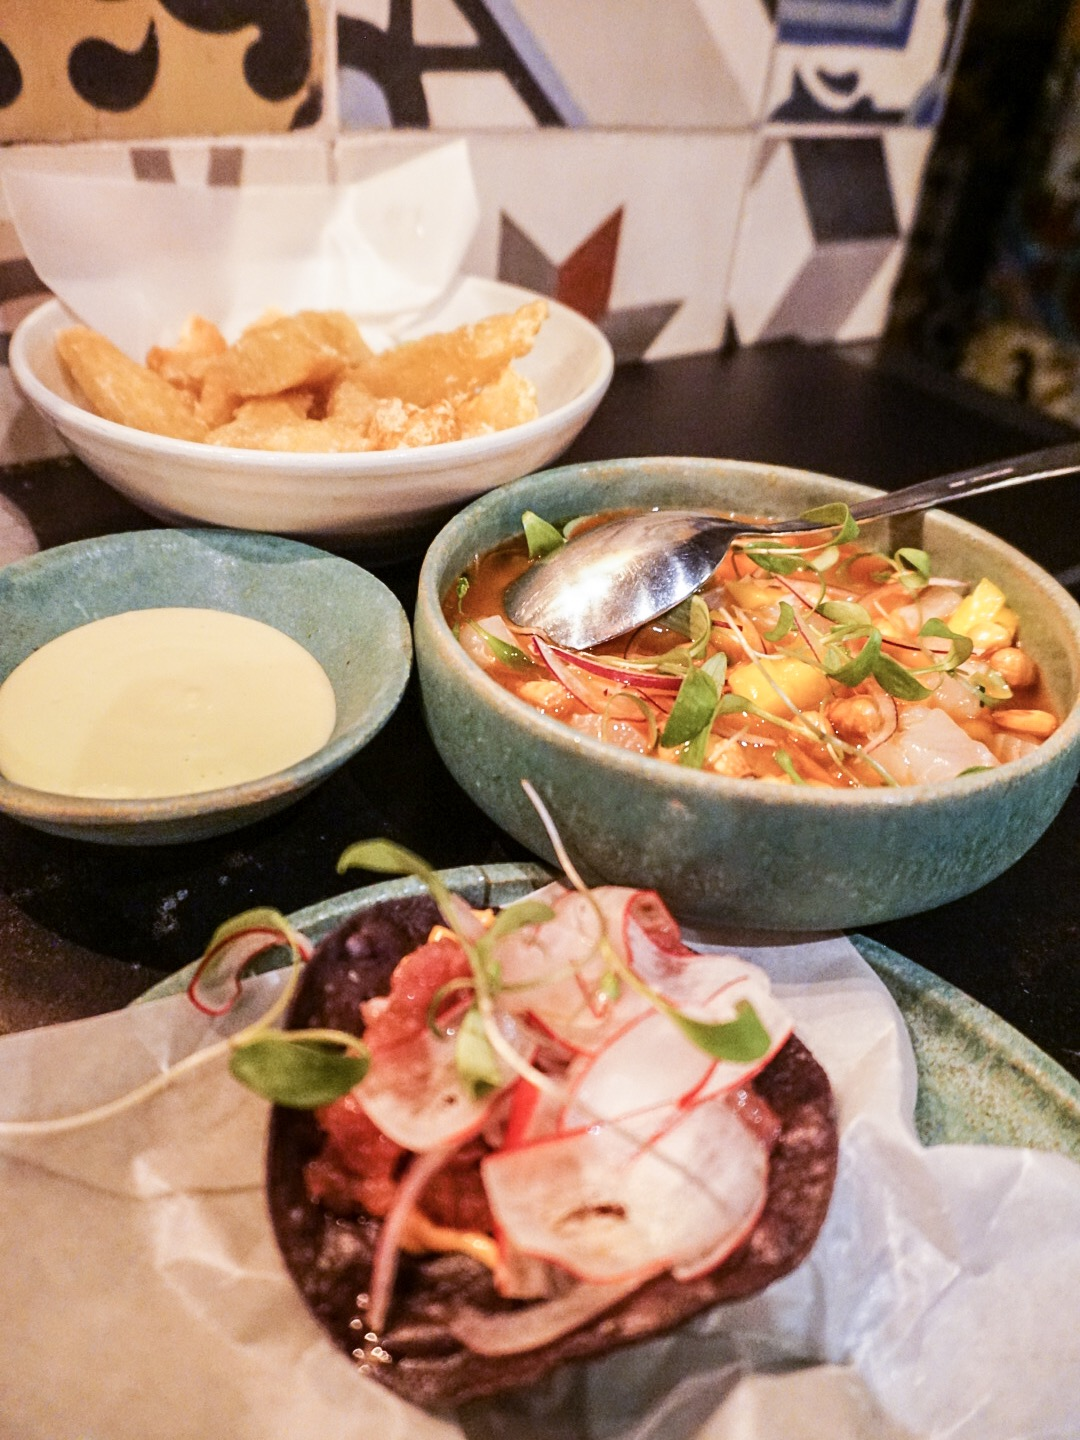 Yuca Fries, Ceviche, and Tostada at Llama